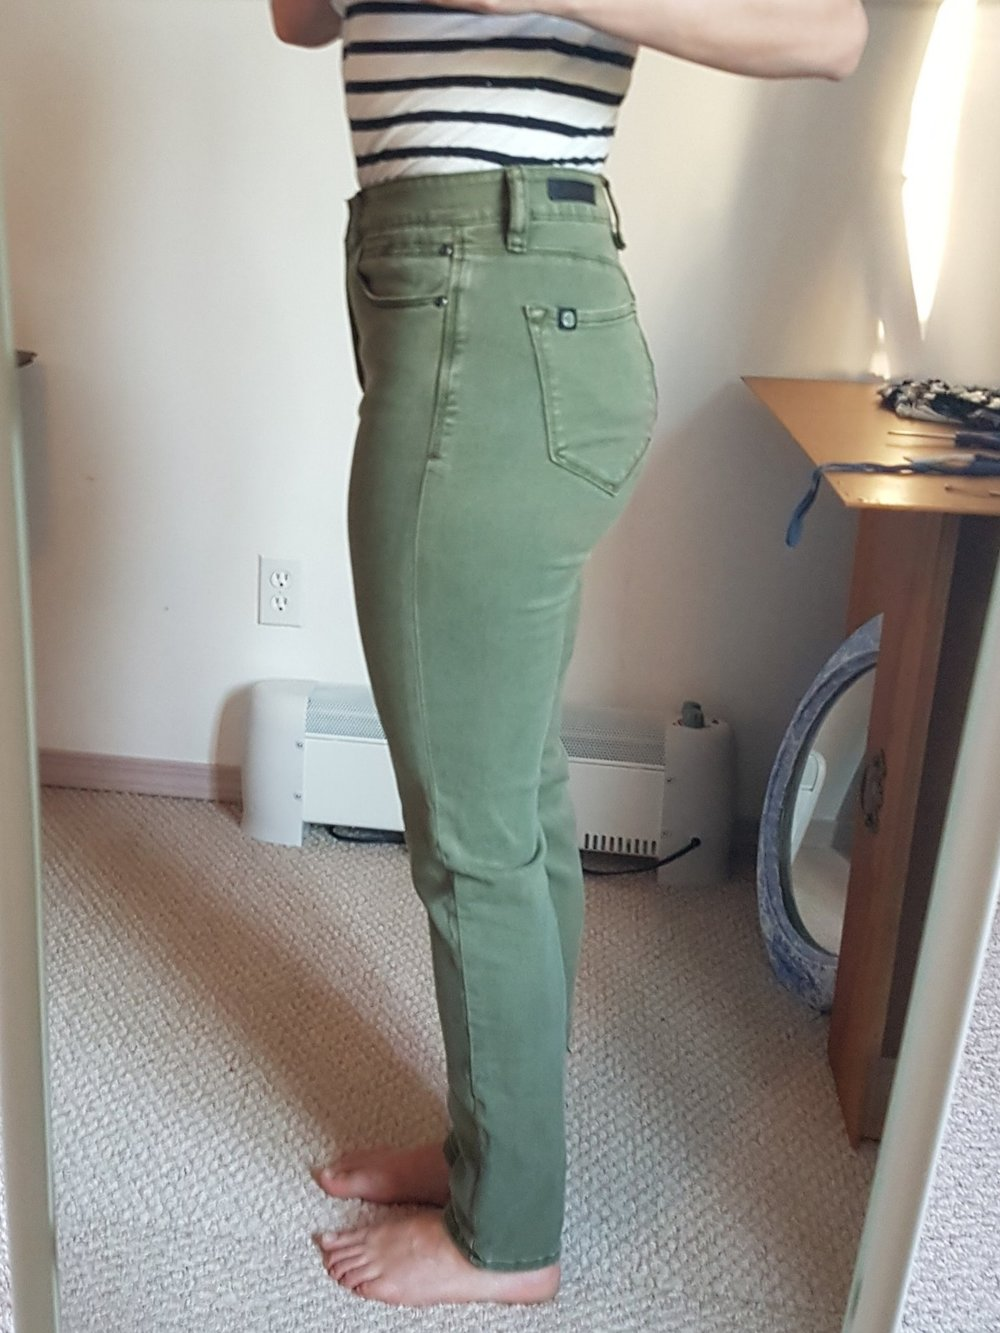 Et voilà! Jeans that fit! I ended up taking 2 inches off the waistband and back in total.